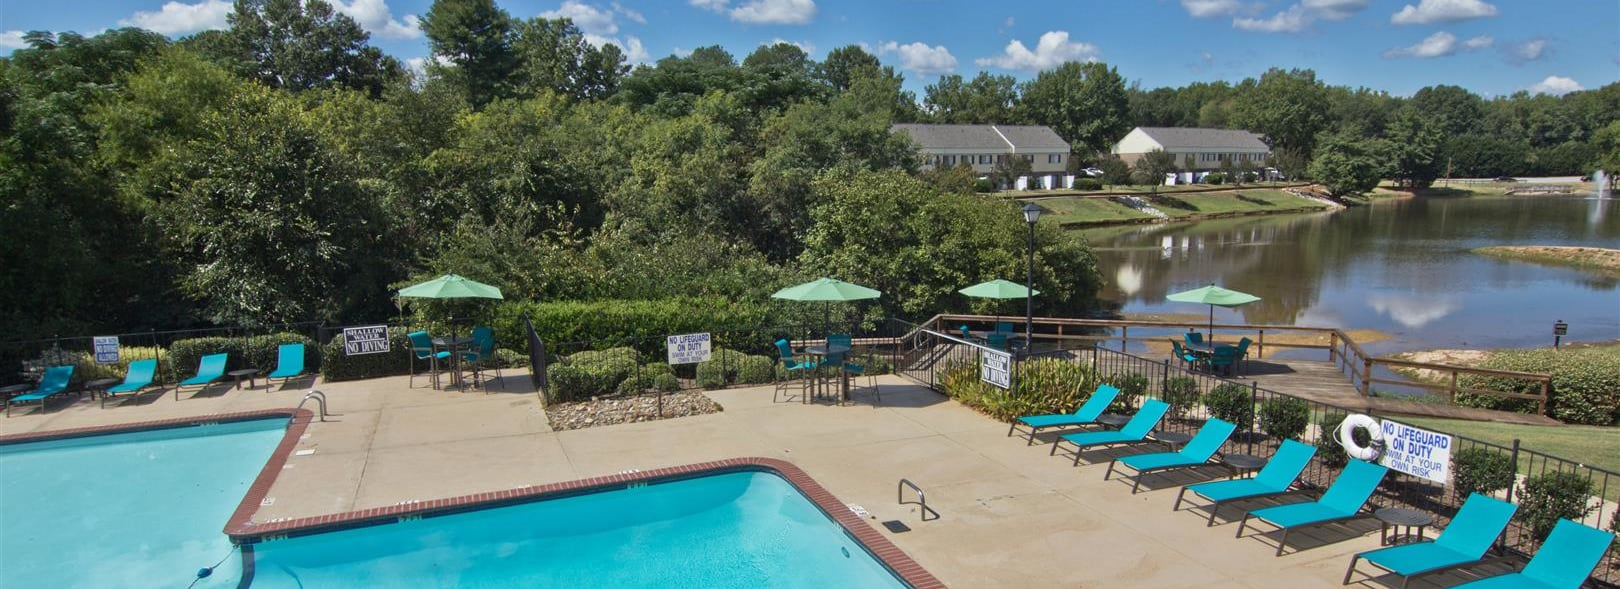 Pool view at Lakecrest Apartments in Greenville SC